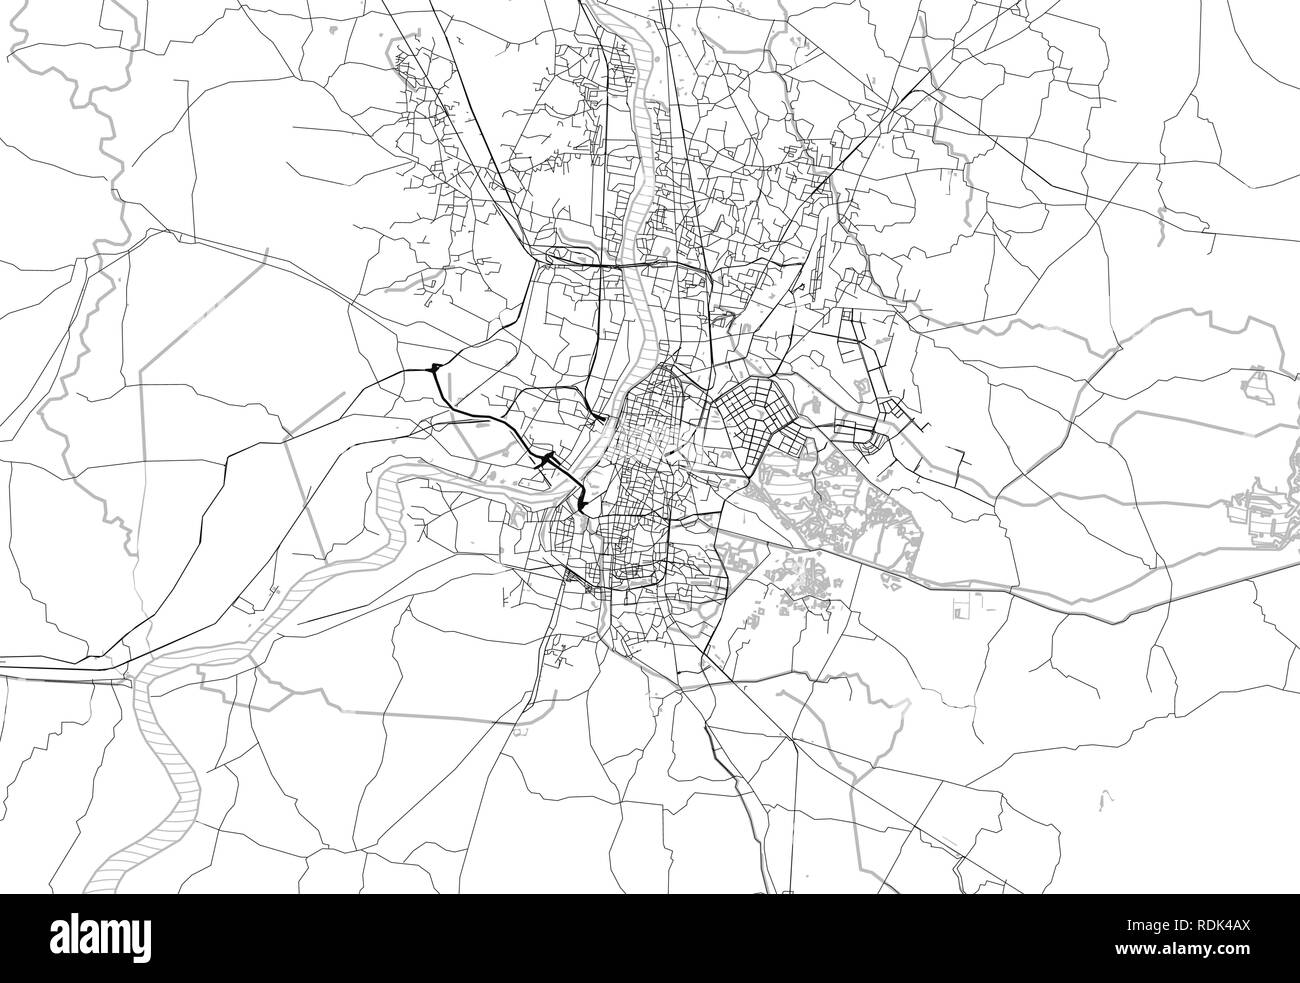 Area map of Kolkatta, India. This artmap of Kolkatta contains geography lines for land mass, water, major and minor roads. - Stock Vector